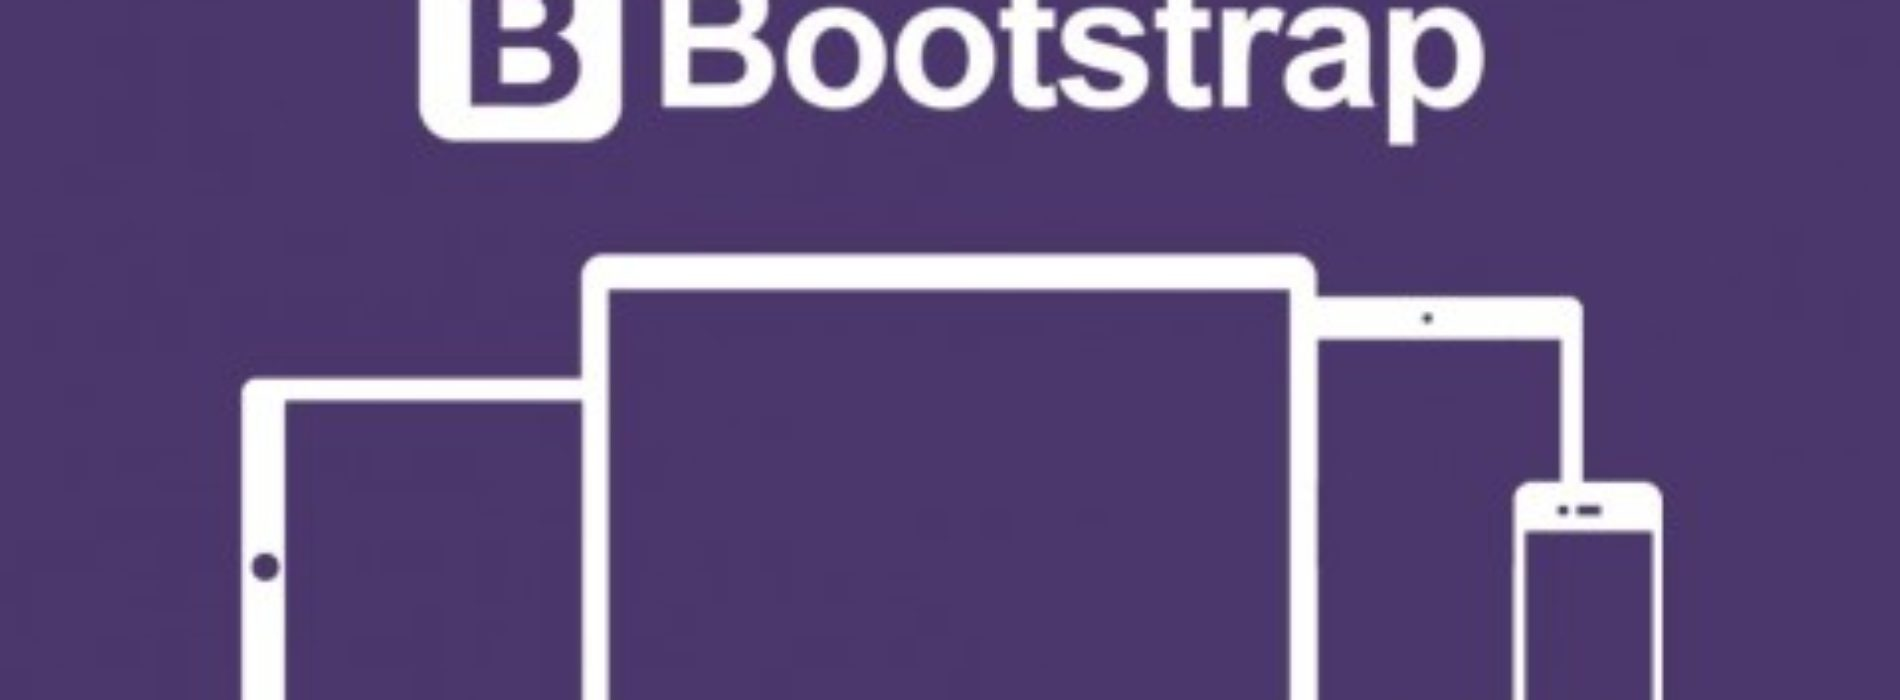 Workshop Maratona Bootstrap gratuito